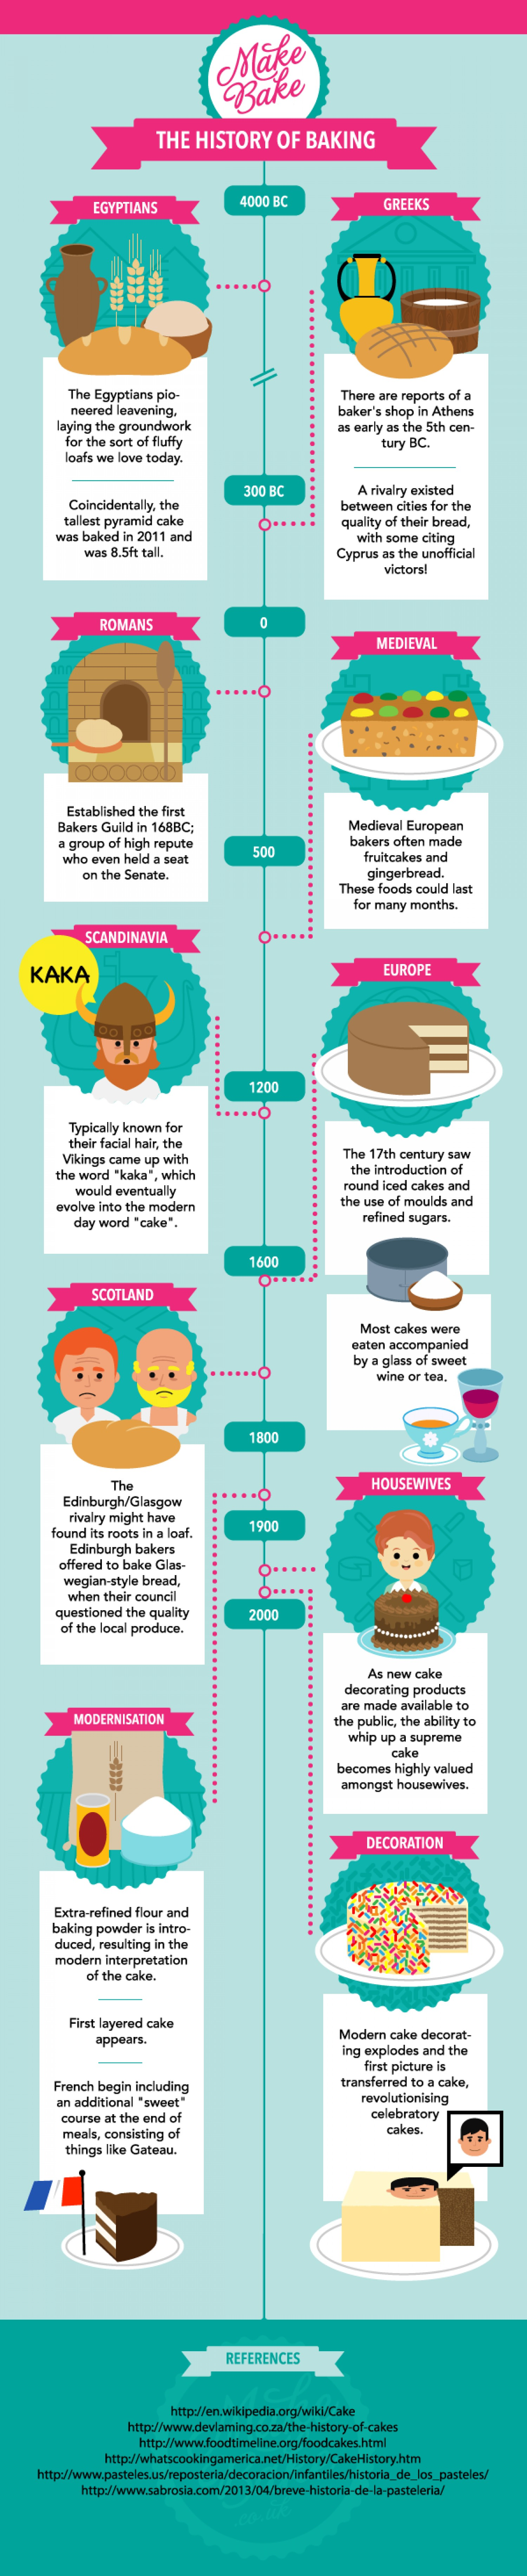 History of Baking Infographic